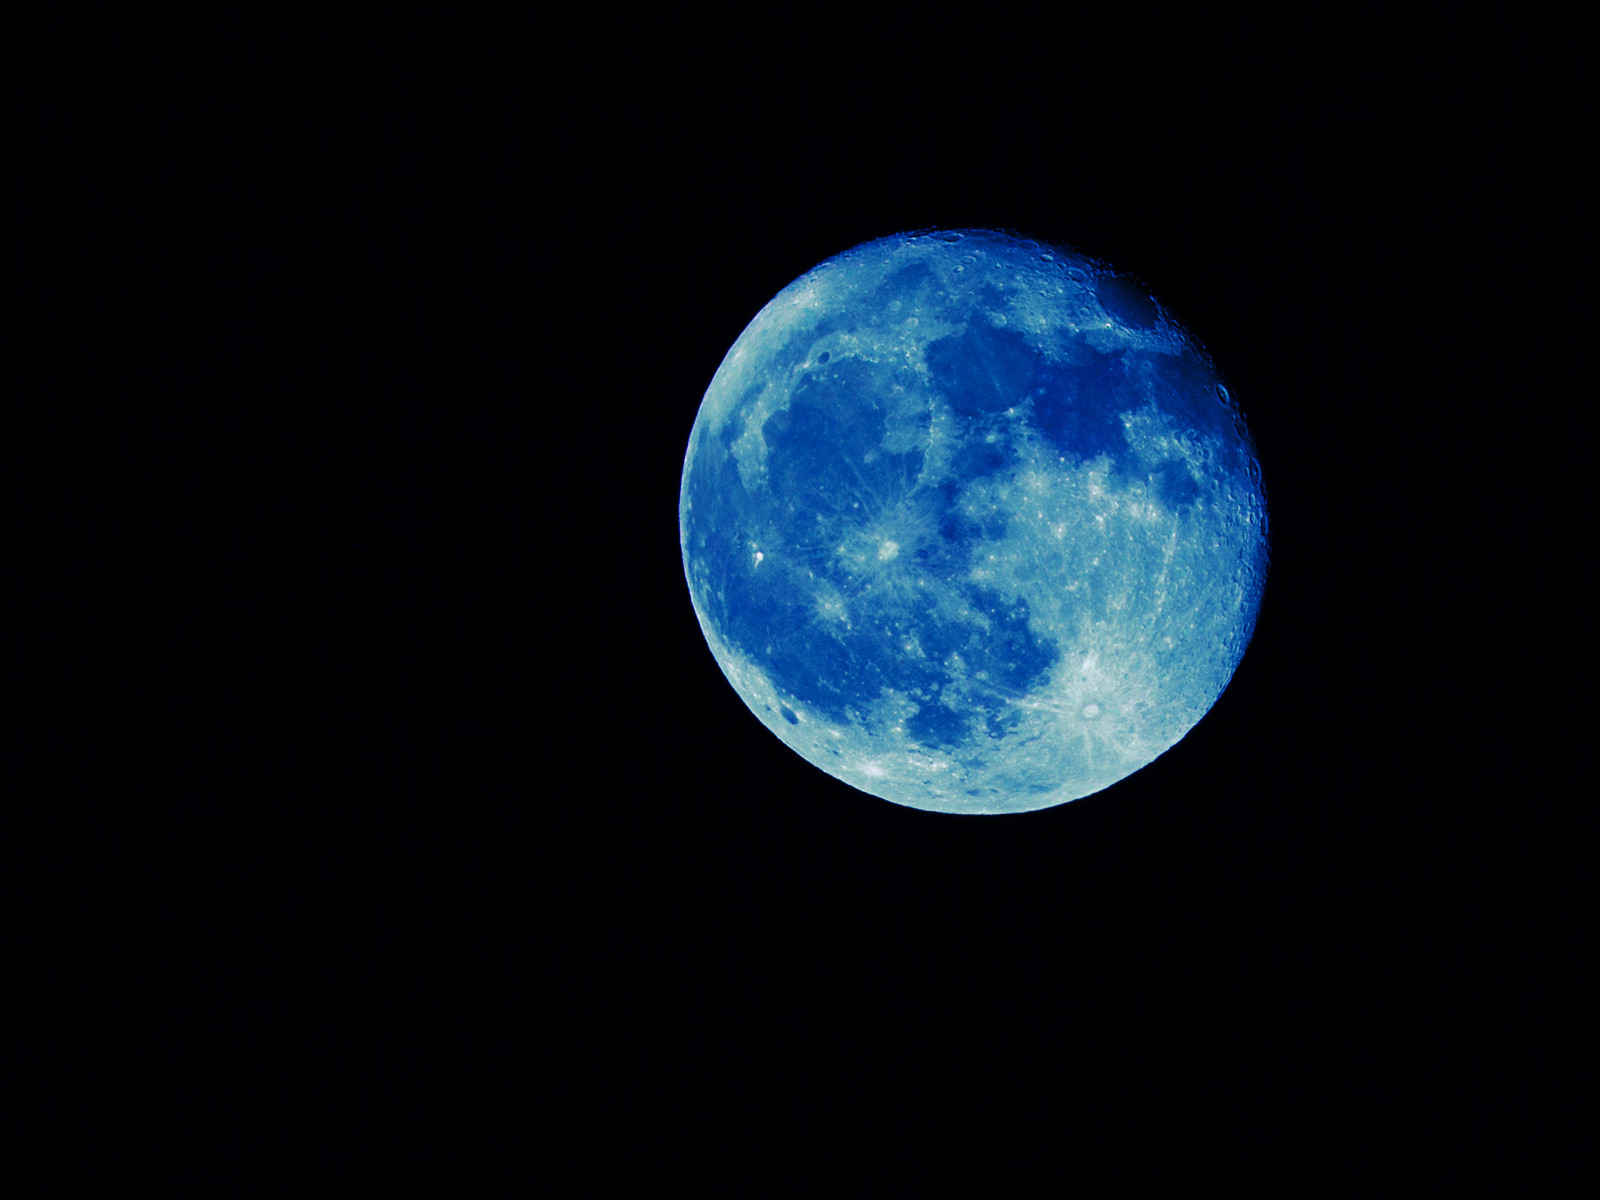 PDI - Blue Moon - The Marcels by Ossie Bruce (10 marks)